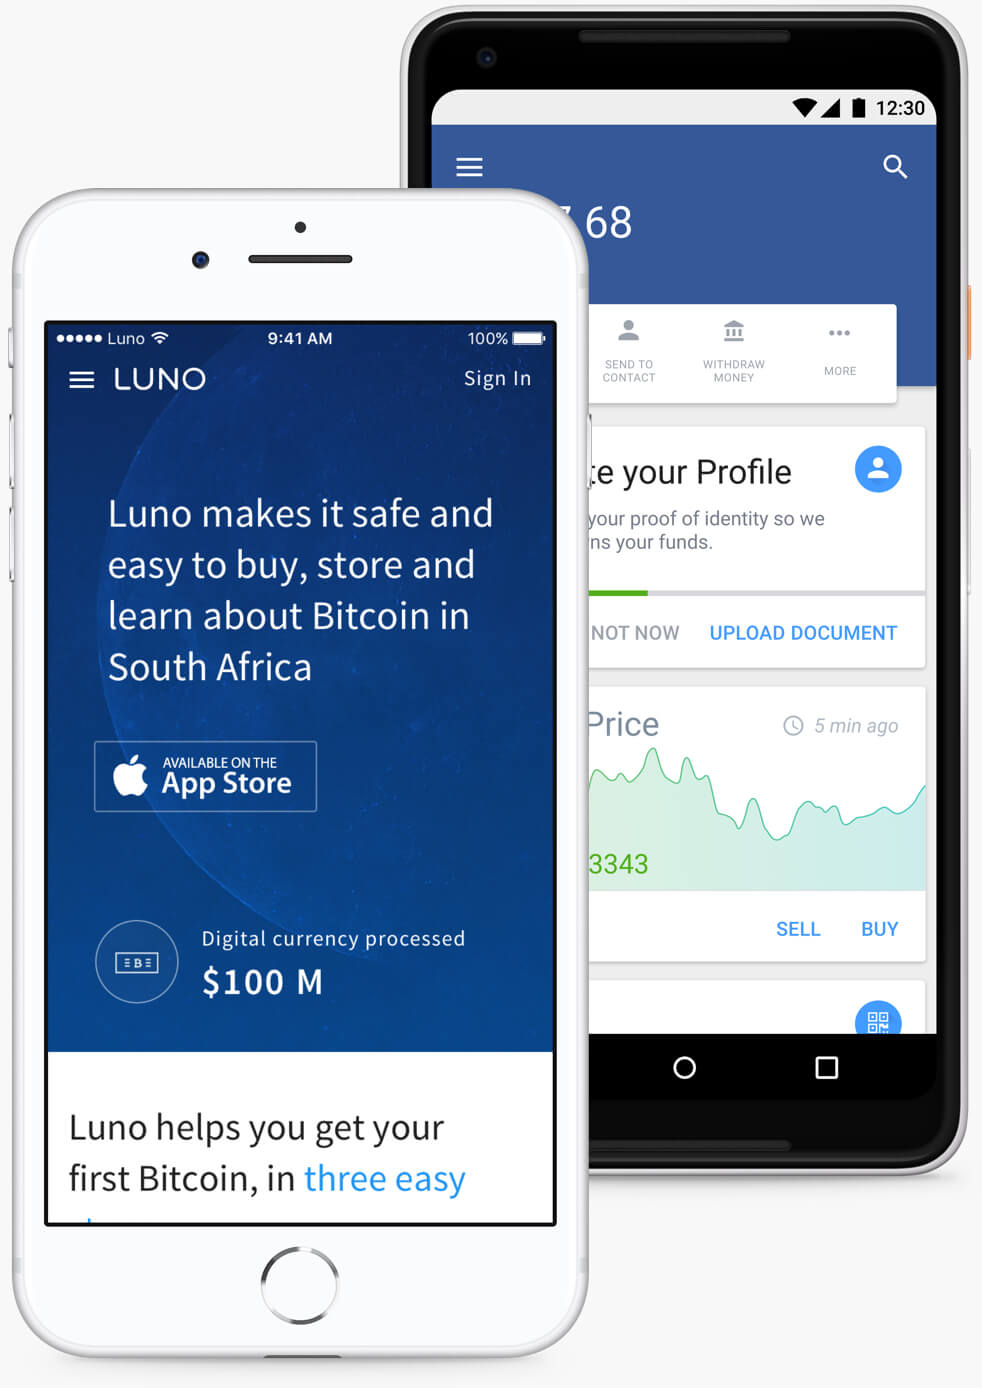 luno website and app displayed on both and ios and android device